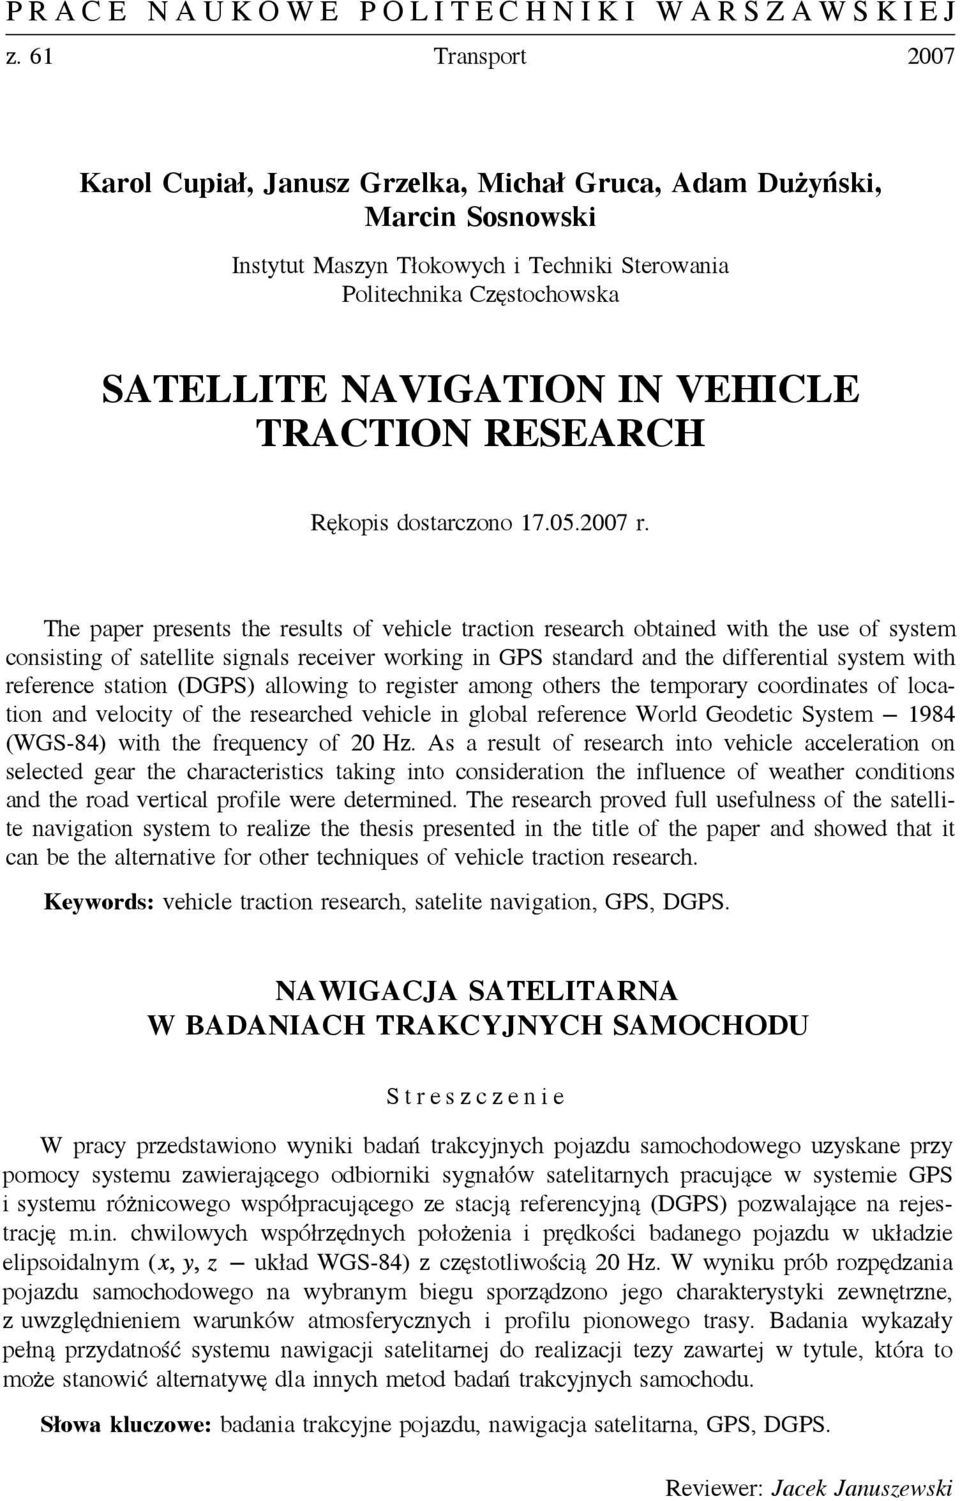 reference station (DGPS) allowing to register among others the temporary coordinates of location and velocity of the researched vehicle in global reference World Geodetic System 1984 (WGS-84) with